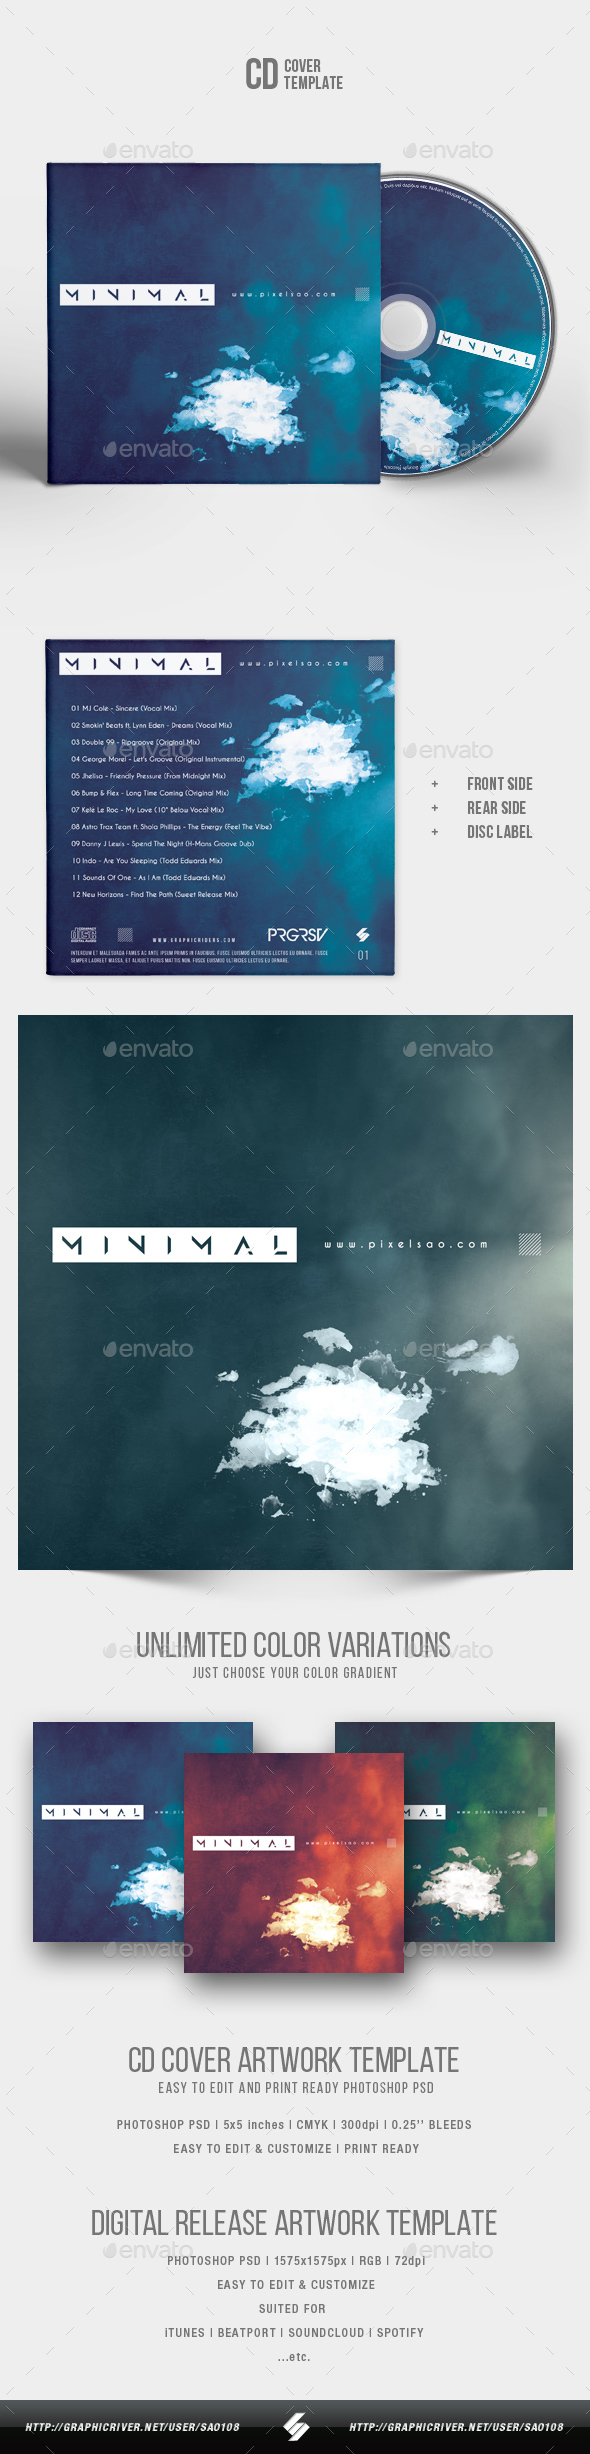 Minimal - CD Cover Artwork Template - CD & DVD Artwork Print Templates